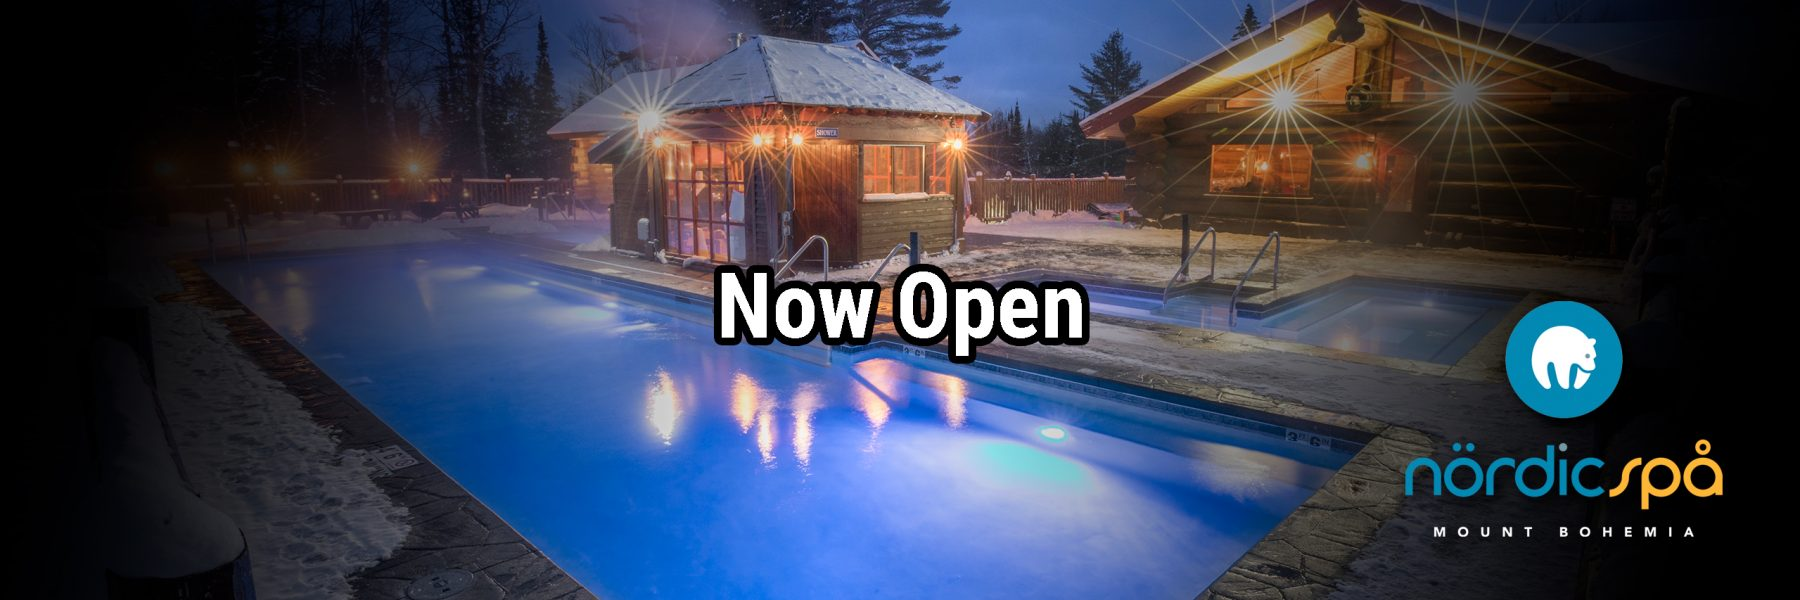 nordic spa now open